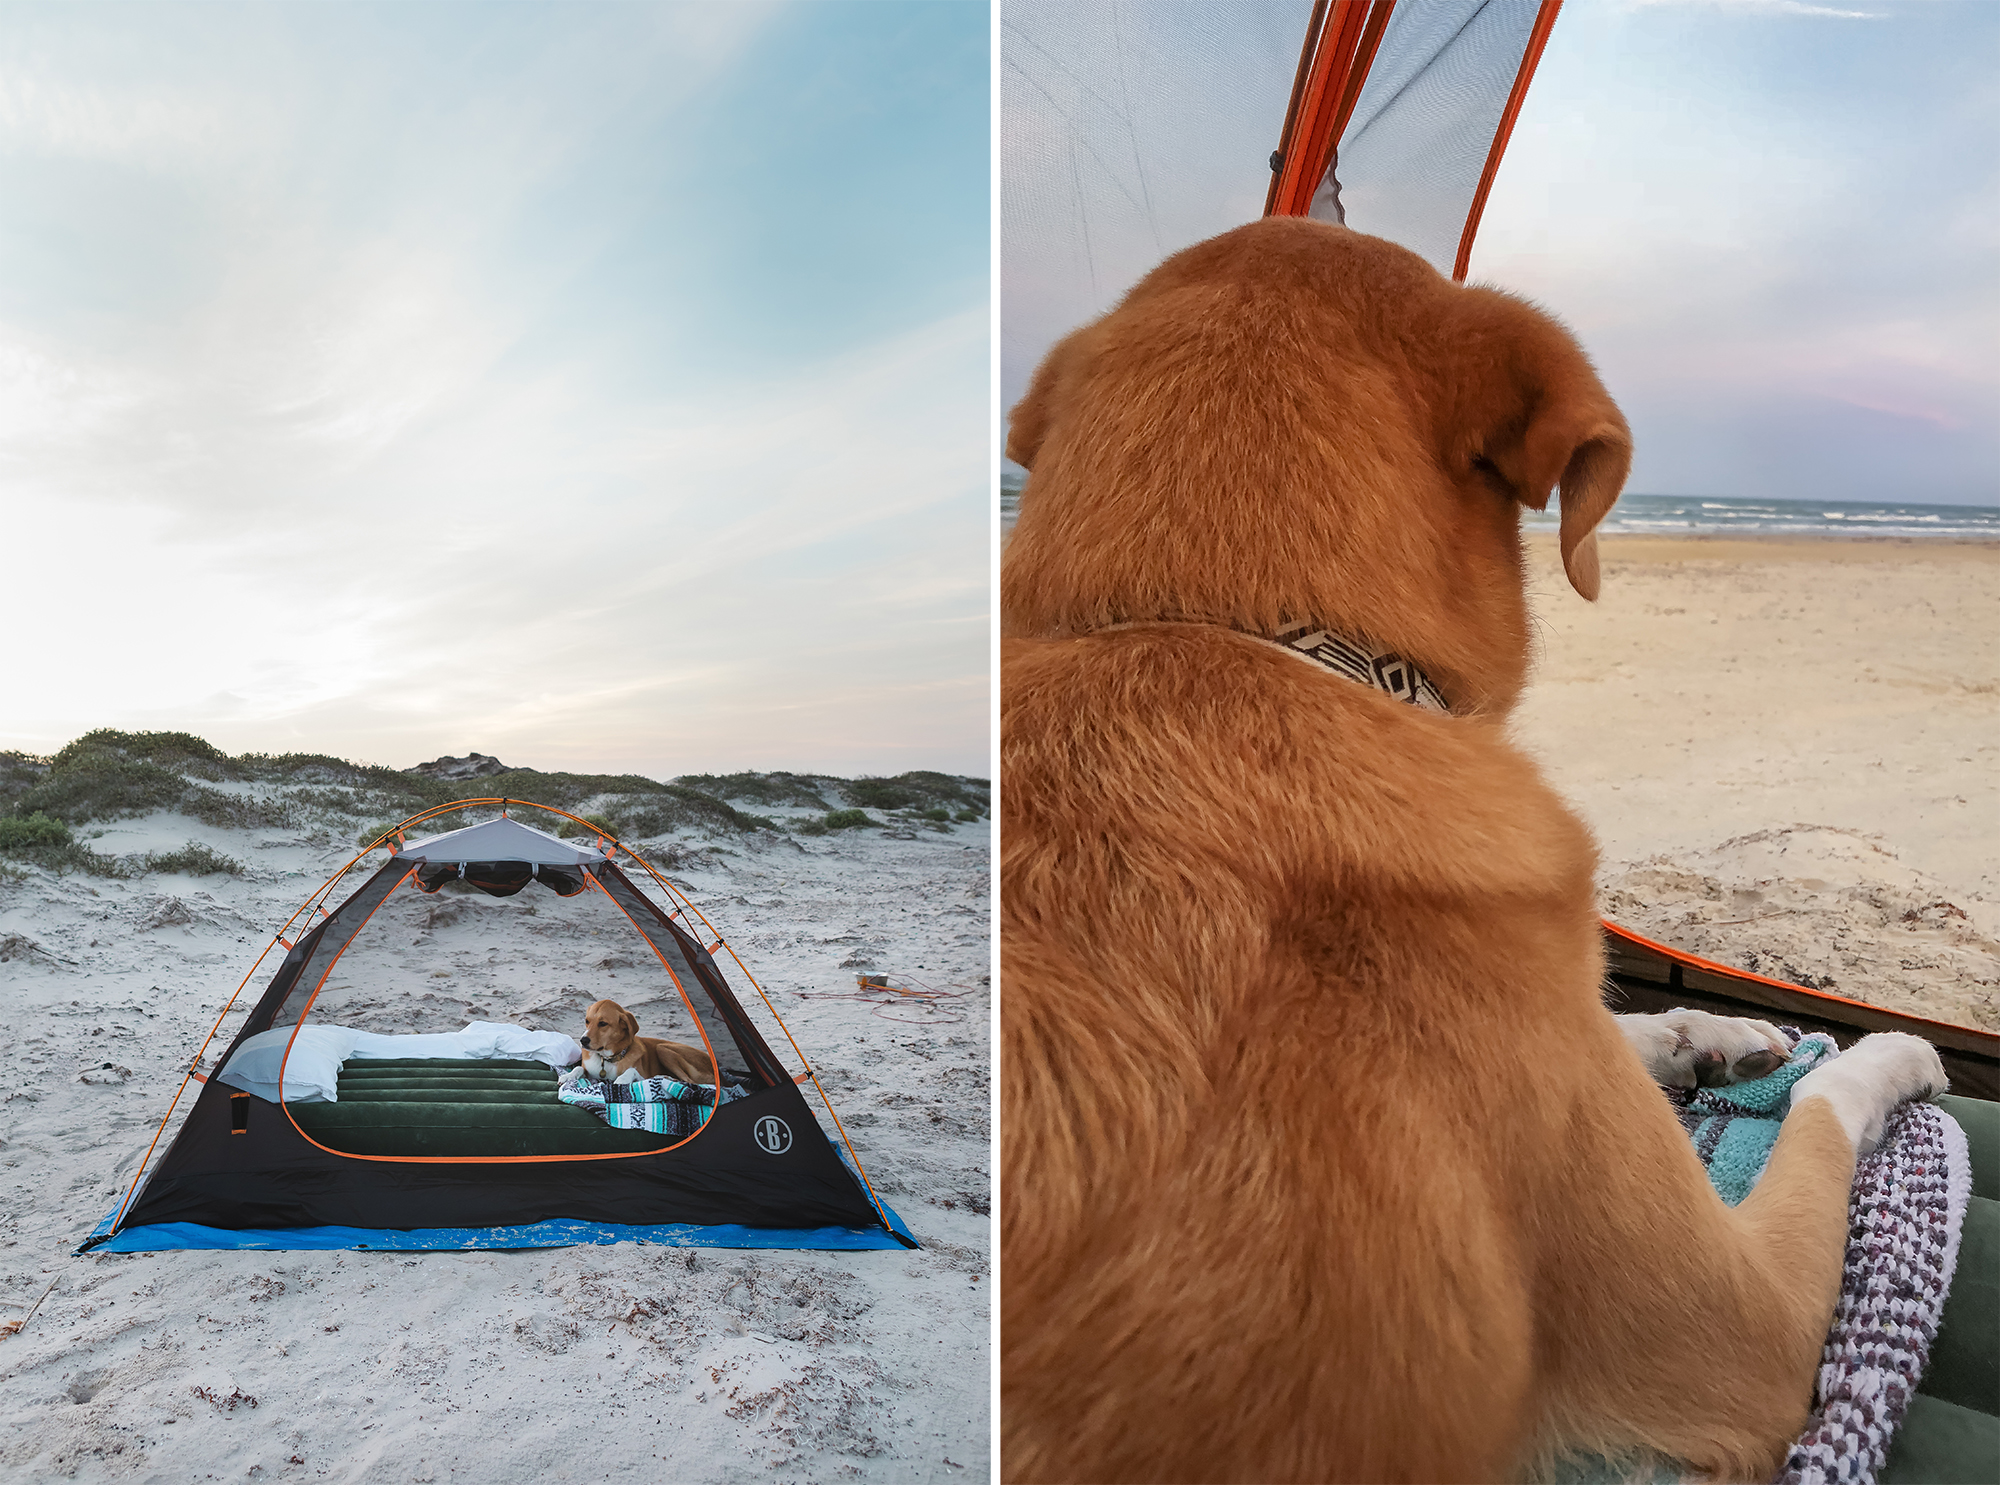 The luxuries of car camping. An airbed. | Padre Island National Seashore, Texas | June 2018